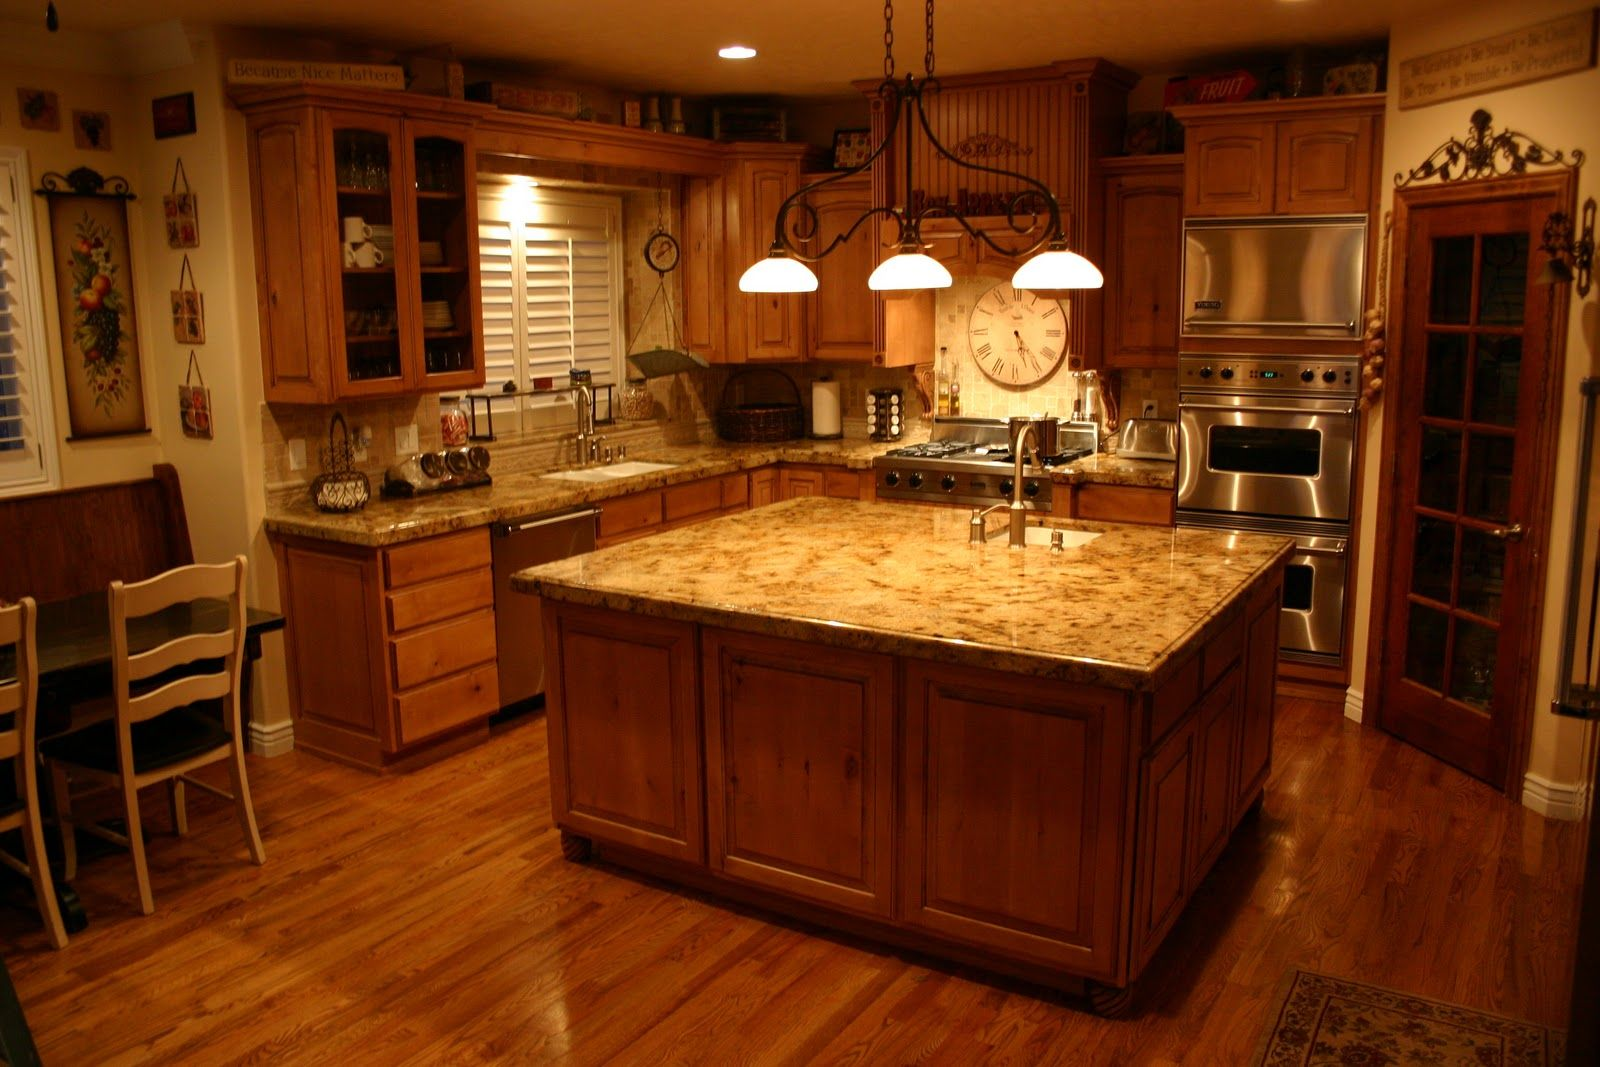 Photos Of Granite Kitchen Tops   The Countertops Are 2 Cm Lapidus Granite  With A 1